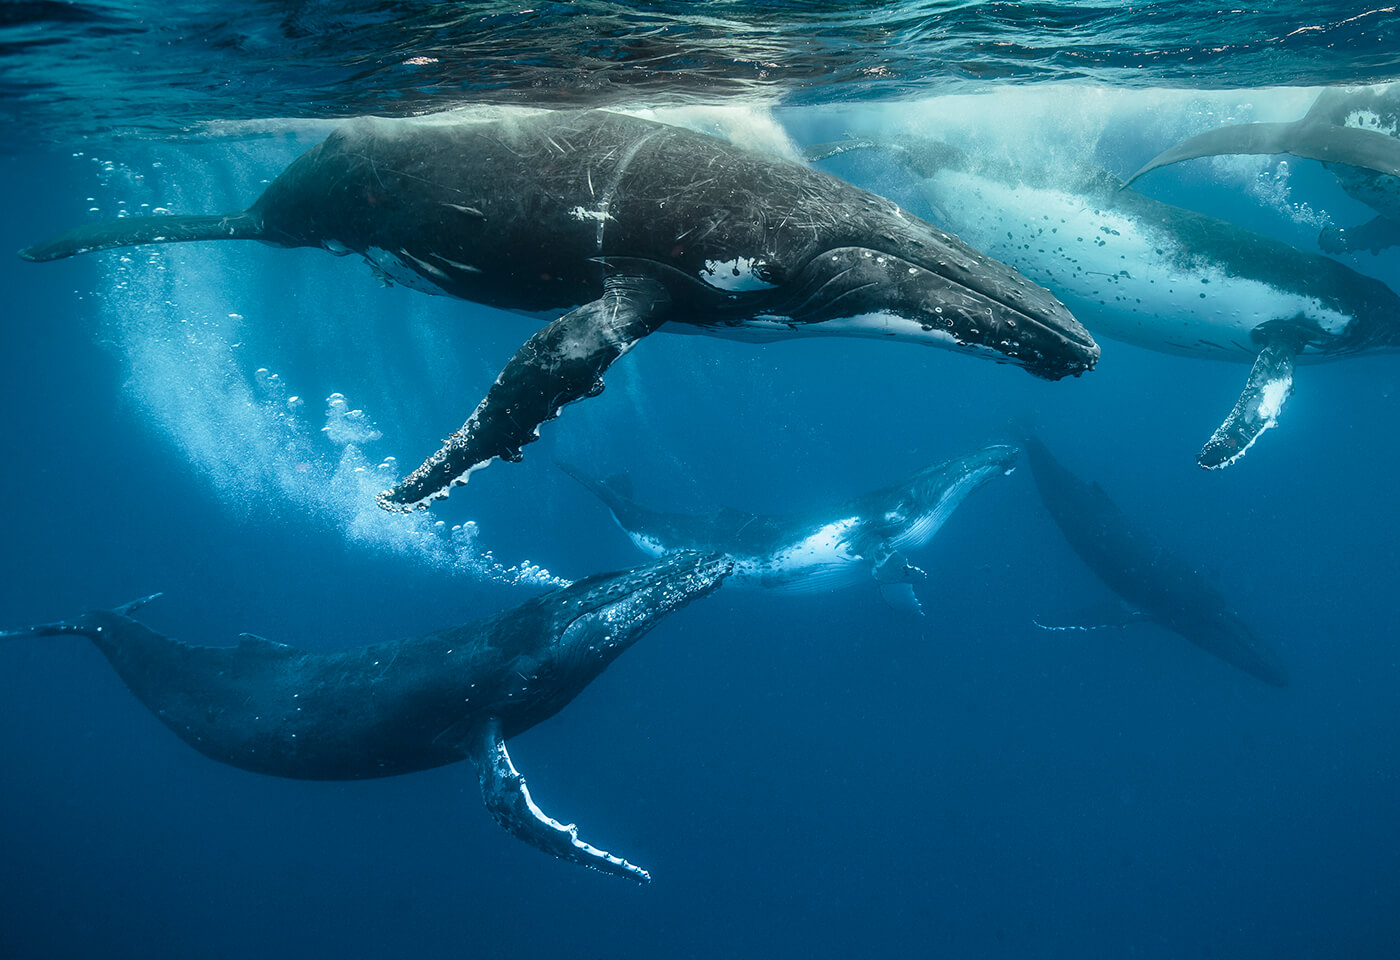 Photo of whales in ocean by Darren Jew